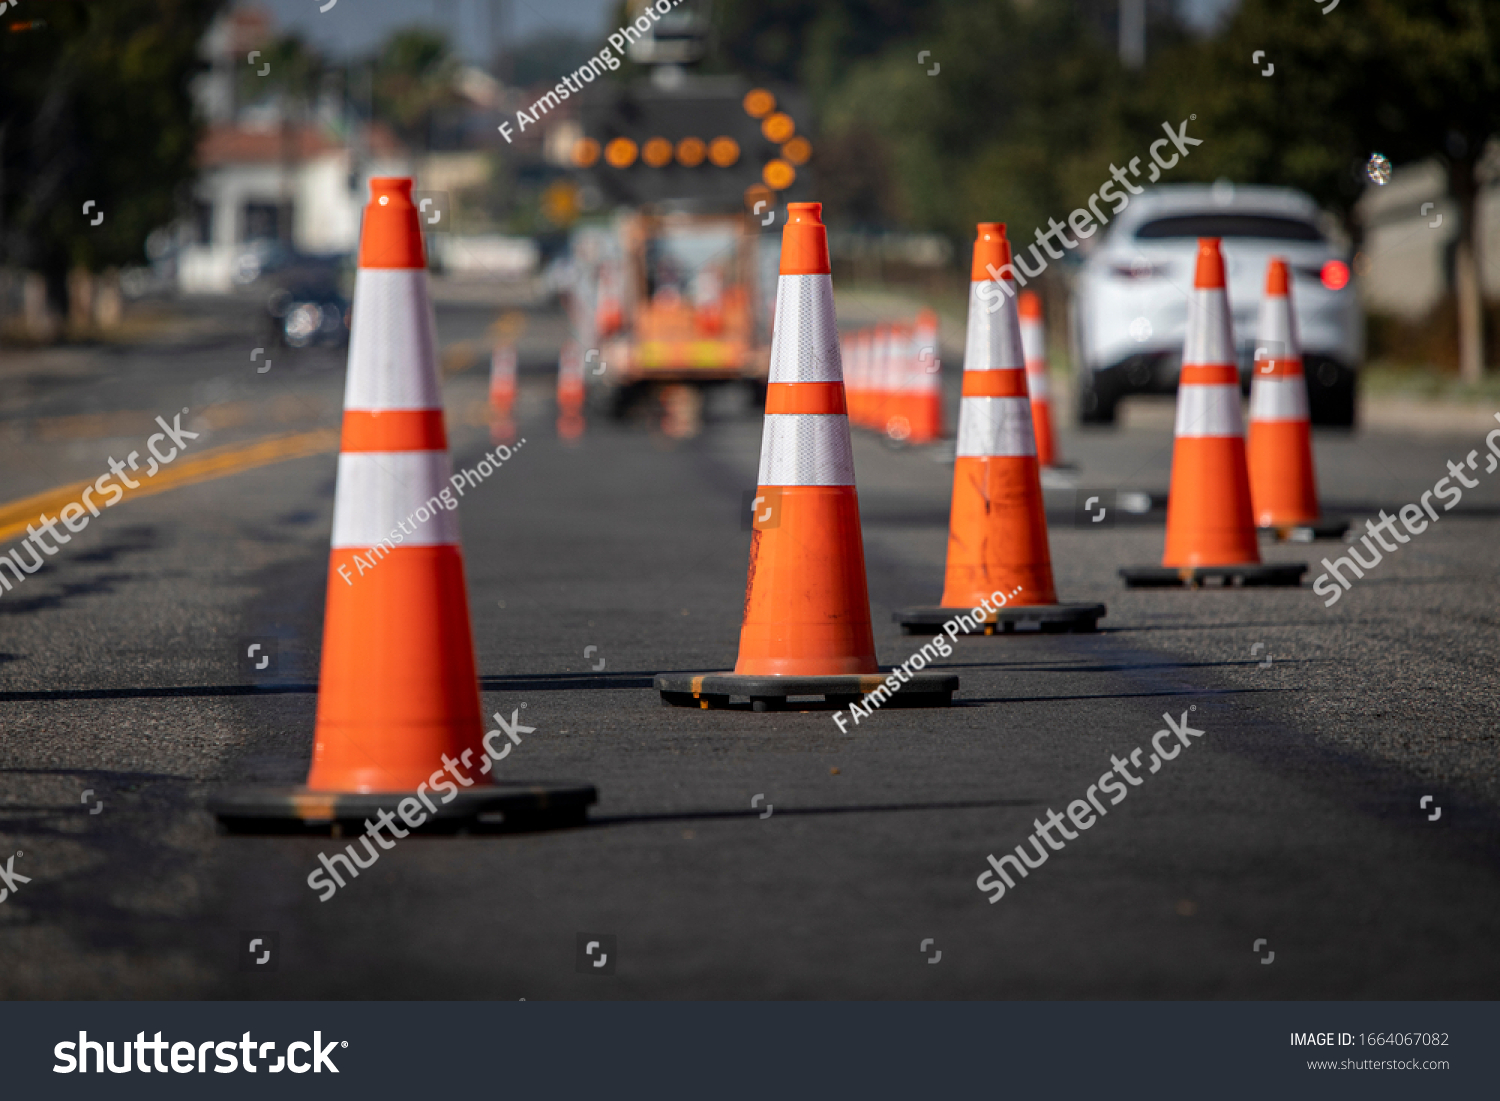 Traffic cones on road with electronic arrow pointing to the right to divert traffic and white car in distance #1664067082